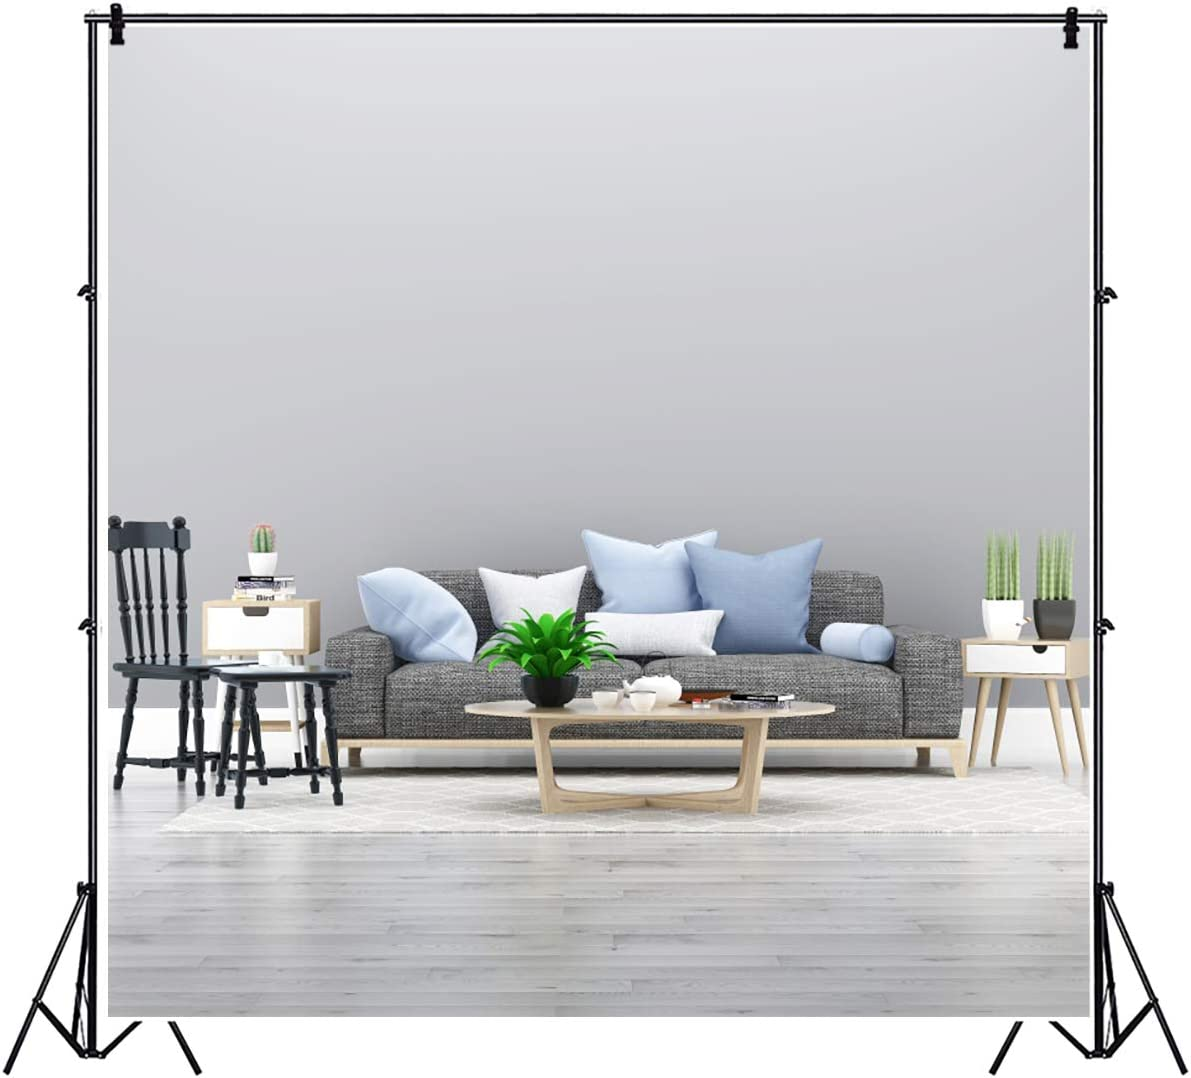 YEELE Bright Living Room Photography Backdrop 9x9ft Wooden Chair Sofa Tea Table Background Modern House and Home Design Interior Apartment Kids Adult Portrait Photo Studio Props